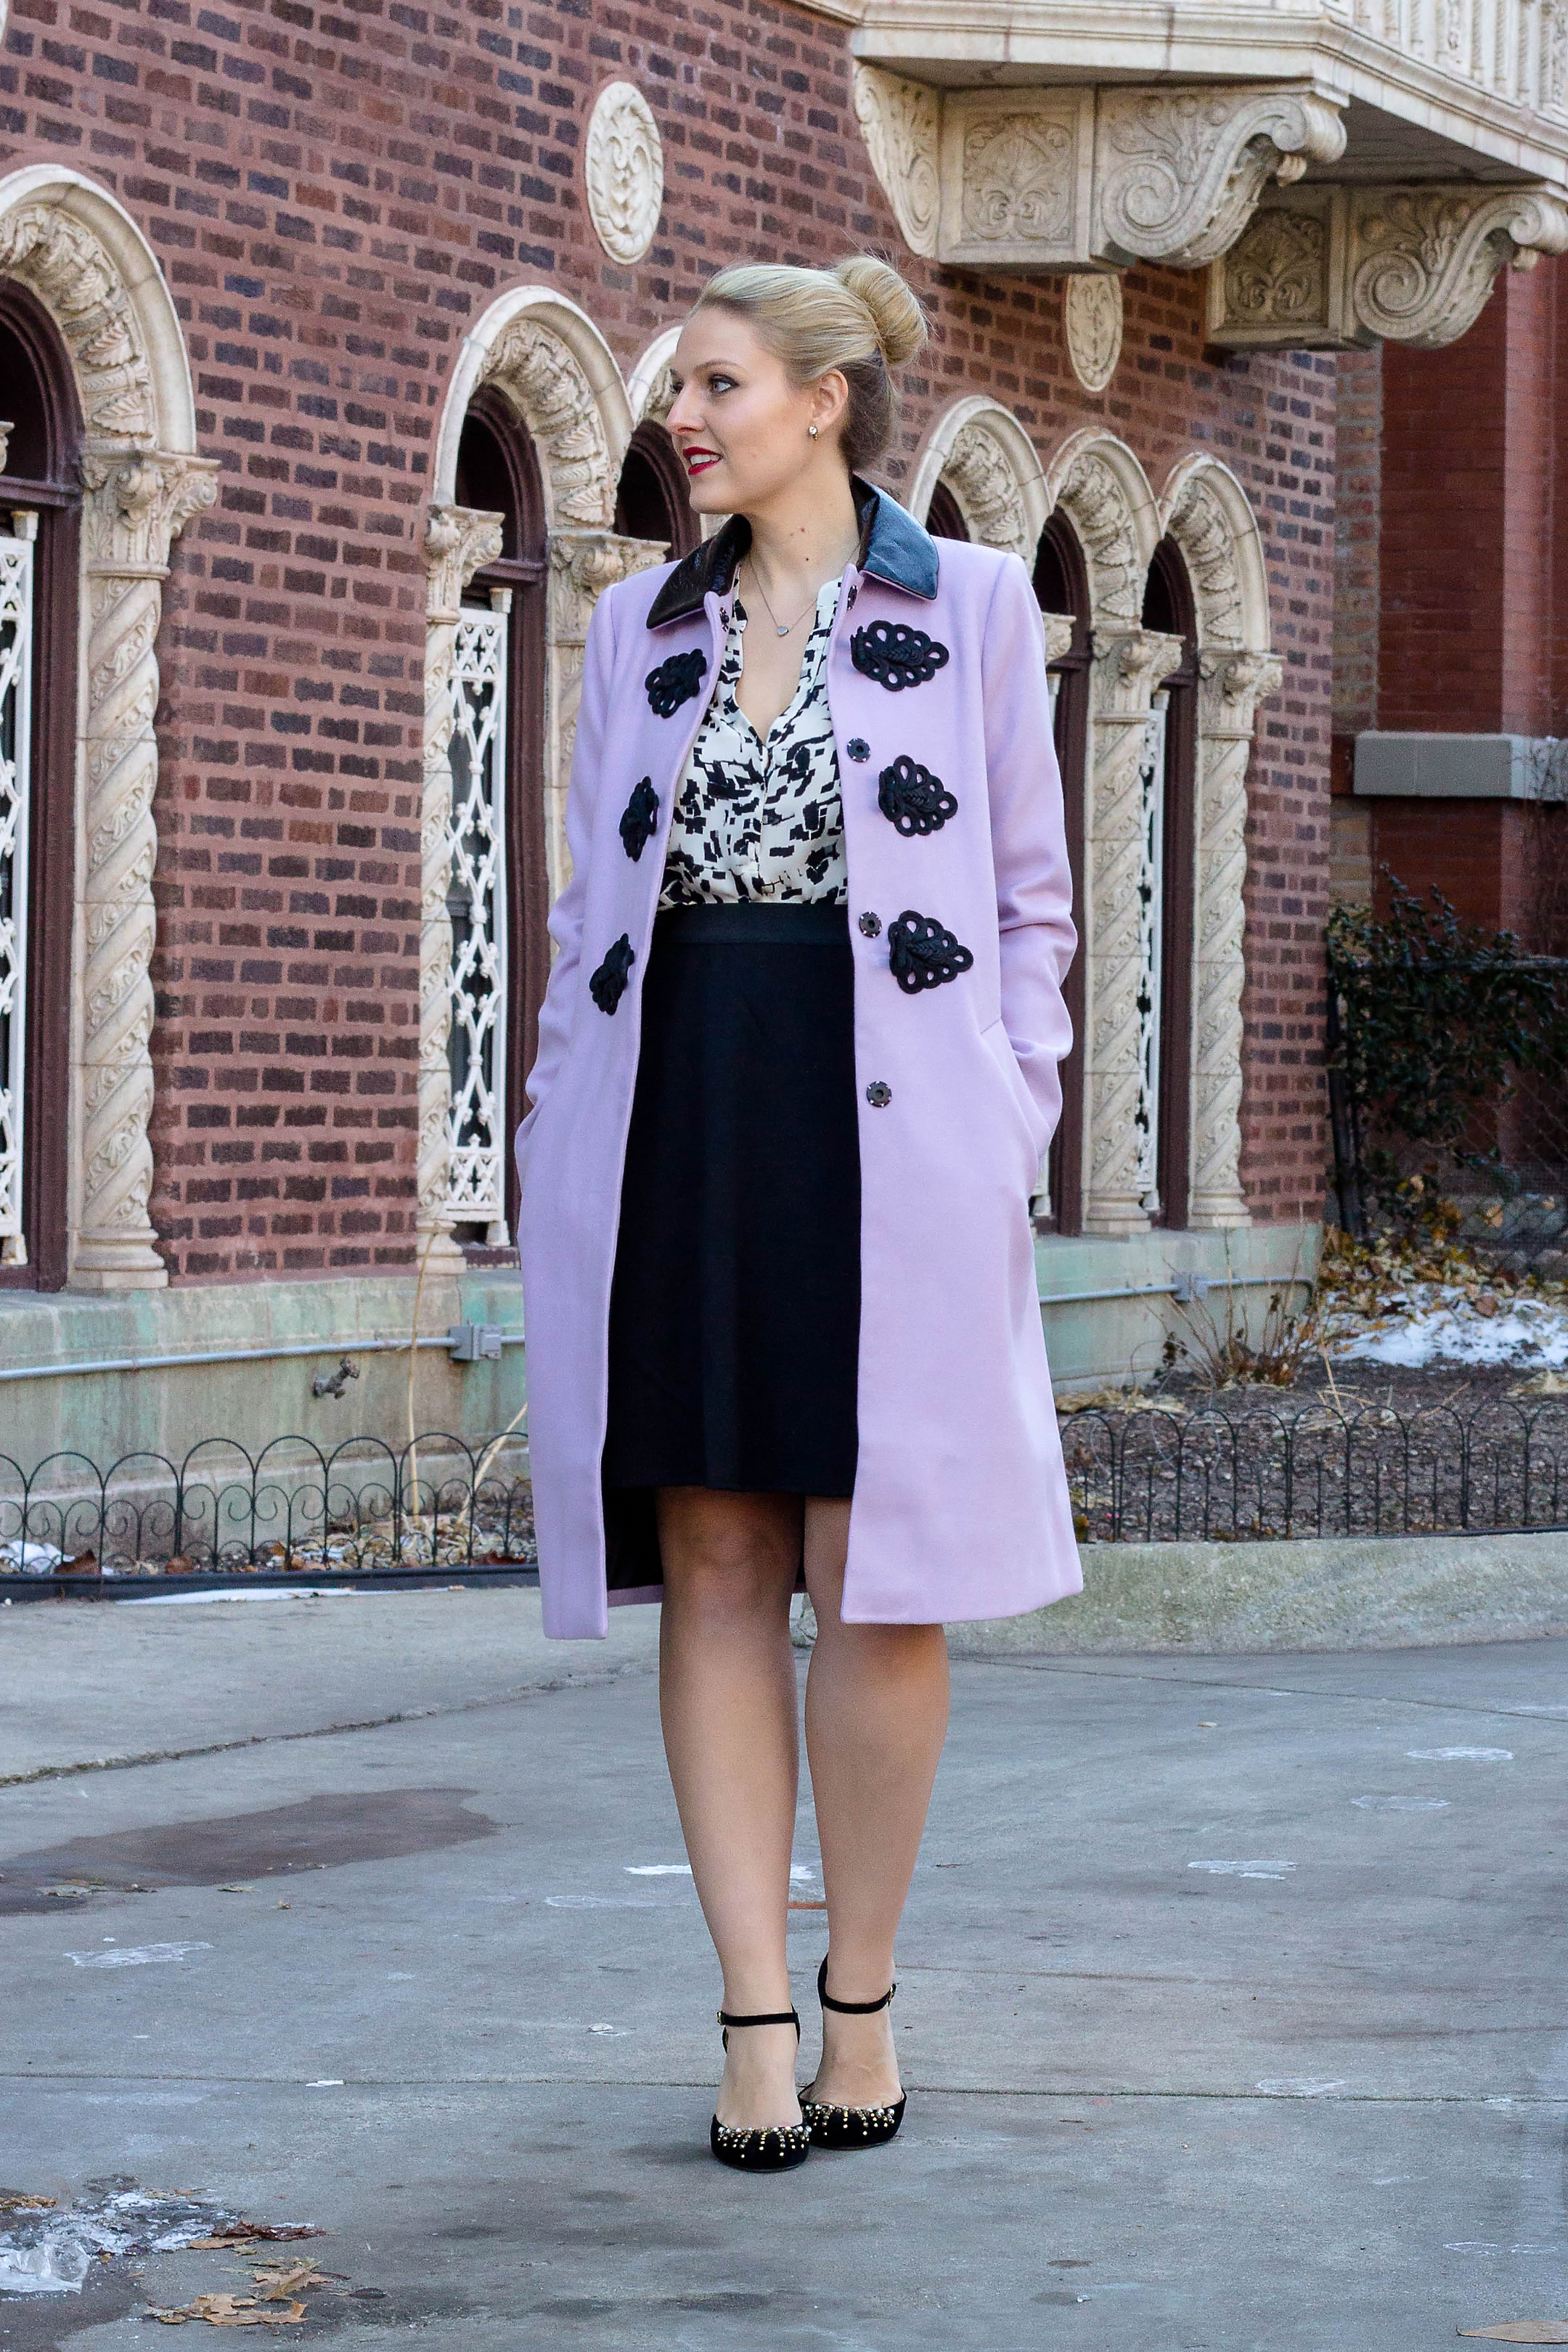 How to wear lilac this winter season with this statement coat from ASOS